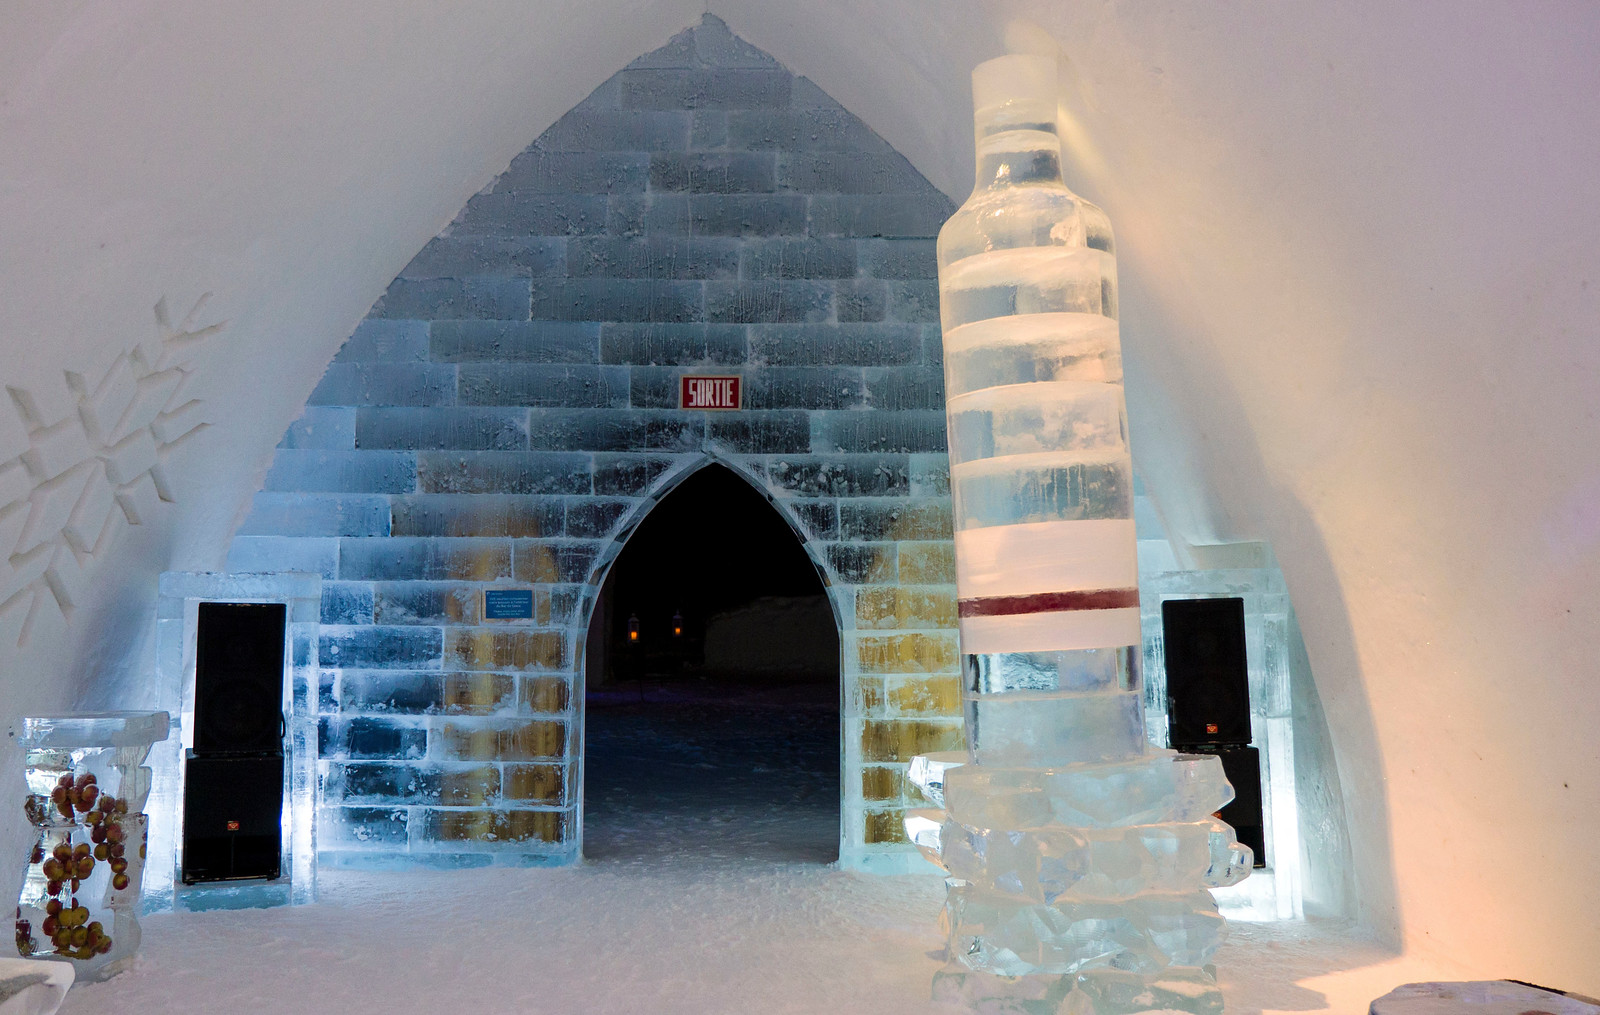 Ice Hotel Quebec: An Insider's Guide to Surviving the Night - Ice bar building